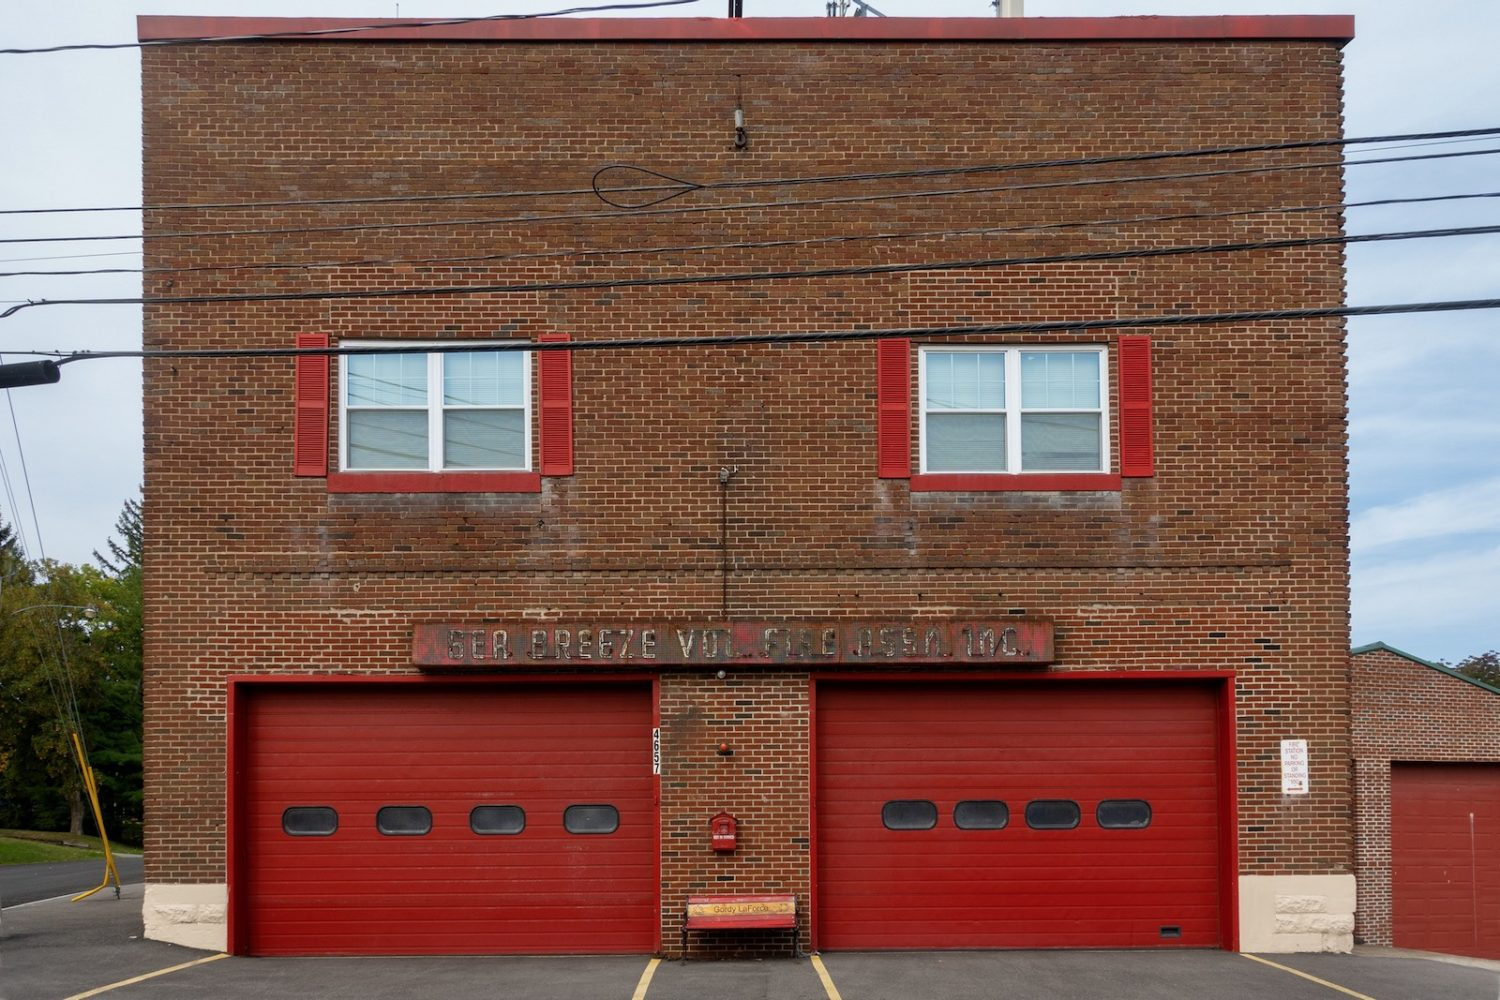 Sea Breeze Volunteer Fire Association Inc. Rochester, New York